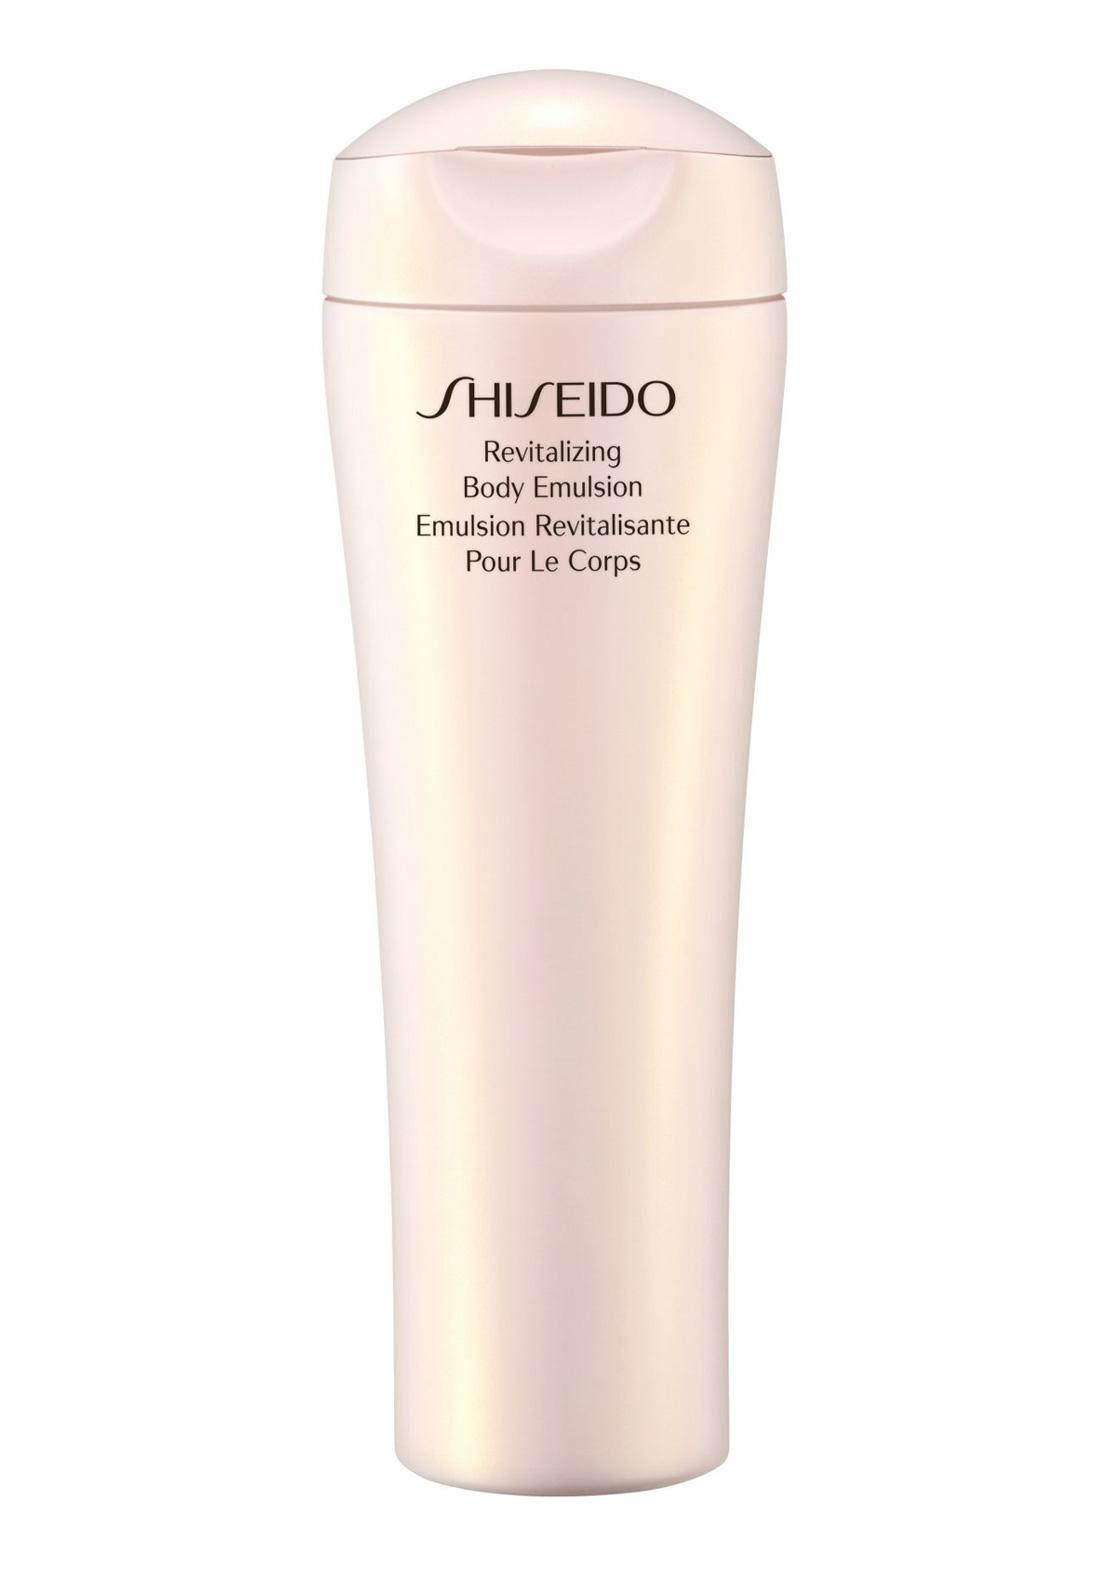 Shiseido Revitalizing Body Emulsion (200ml)